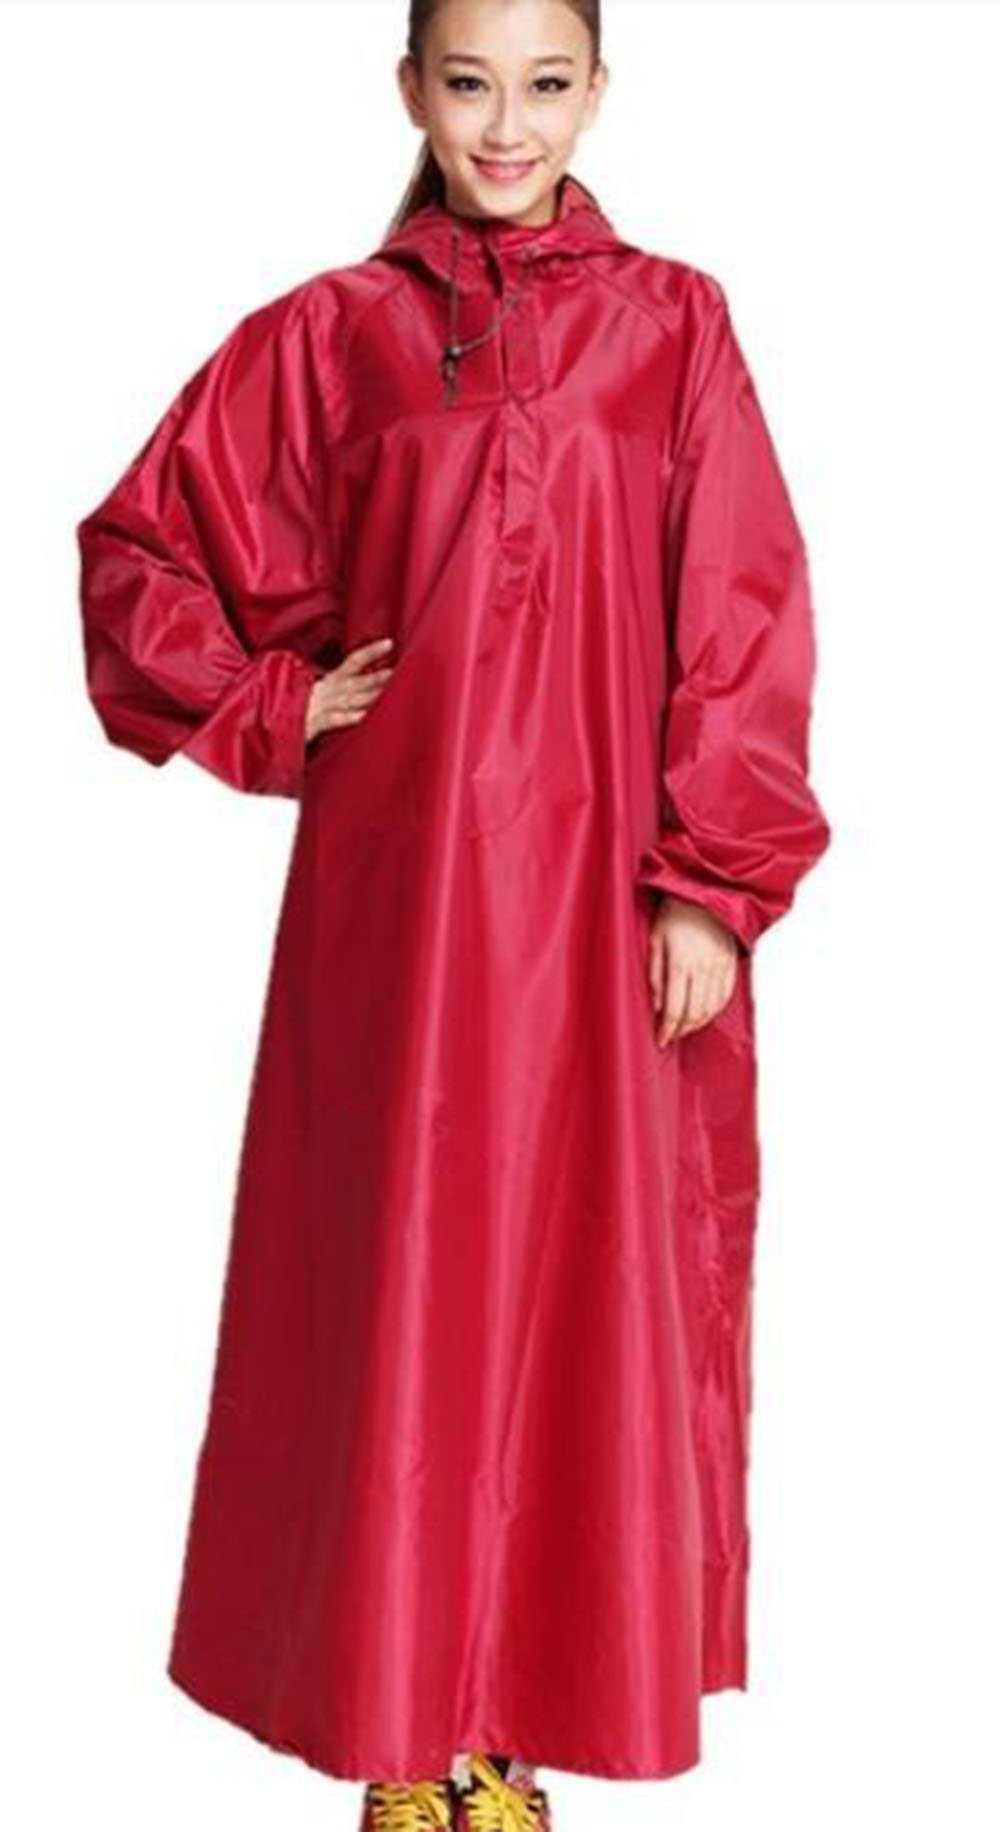 Unisex Hiking/Fishing/Cycling Raincoat Outdoor Rain Cape Poncho (XXL, Red) by Rain coat (Image #1)